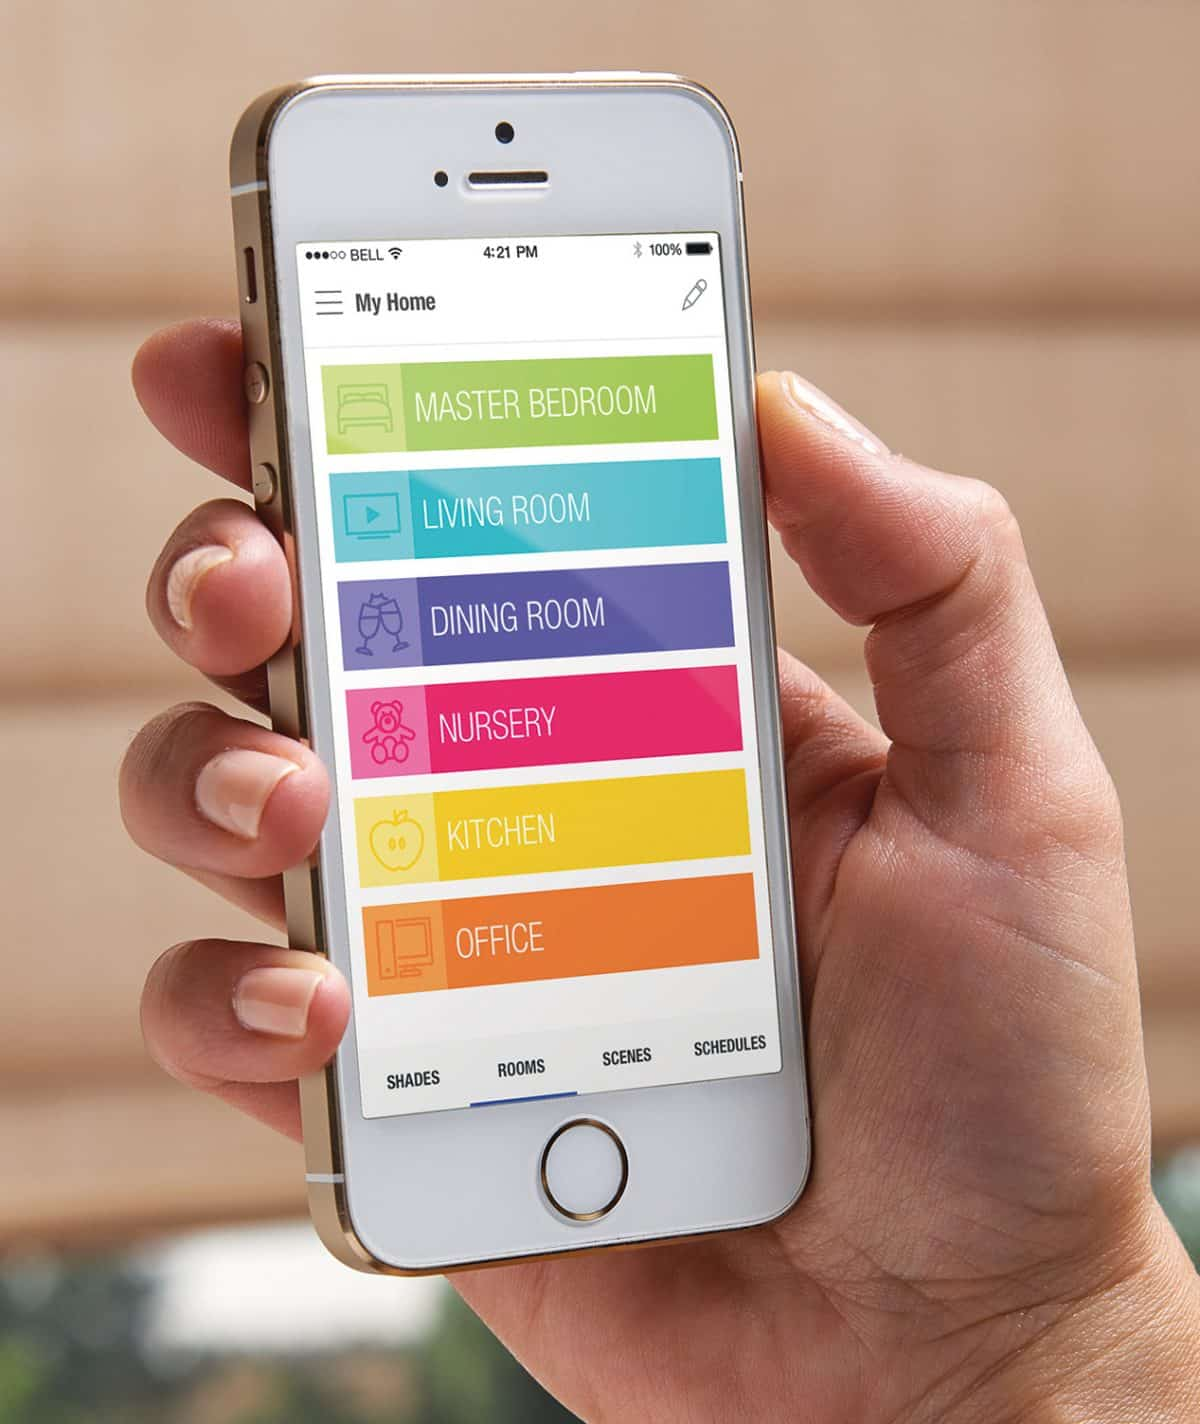 Luxaflex PowerView App For Controlling Duette Blinds from a SmartPhone